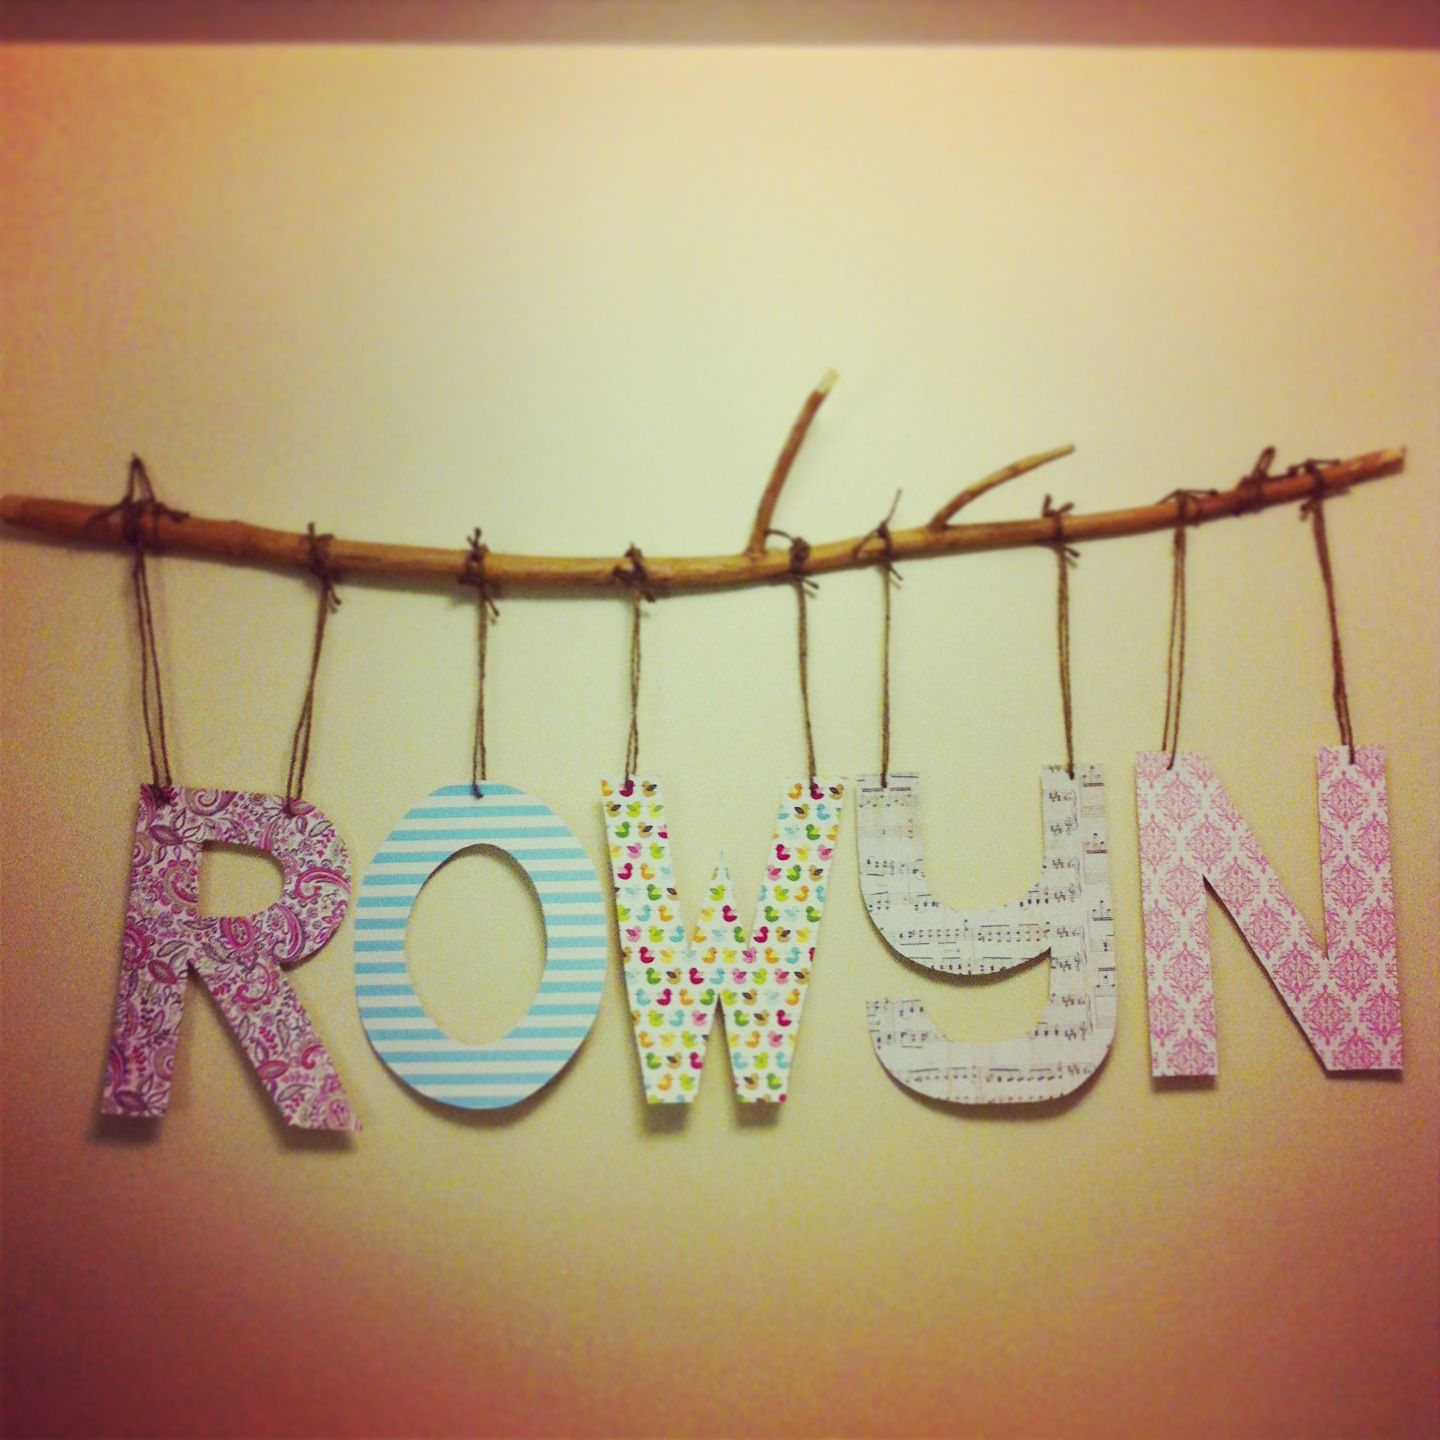 Wall hanging idea we took from Pinterest and made our own ...